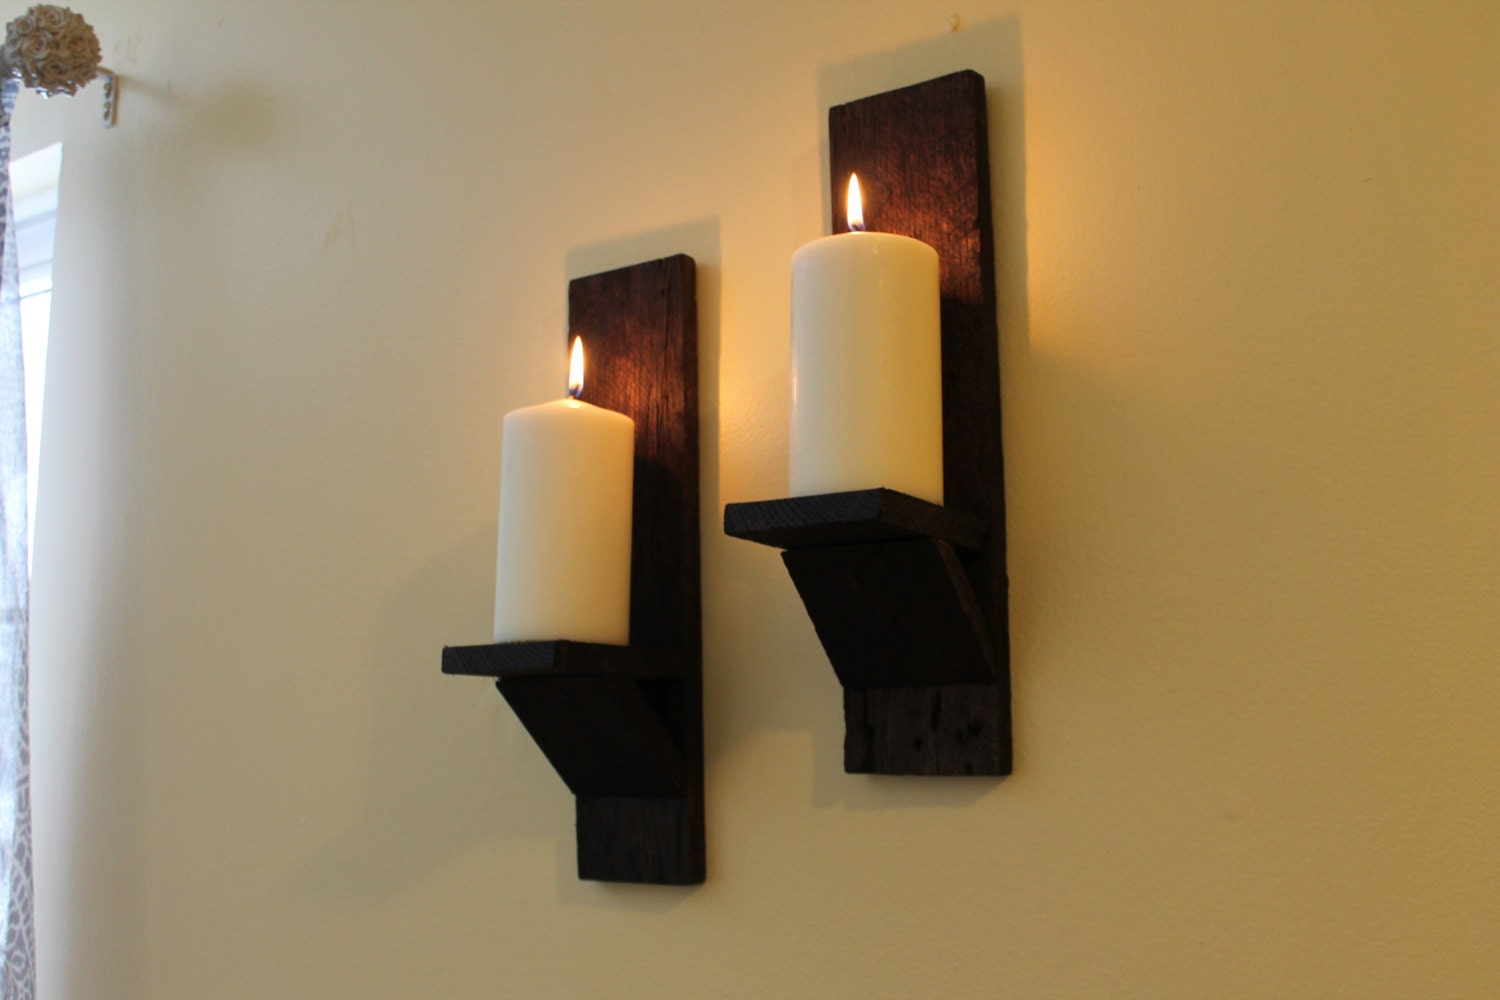 Pallet Wood Wall Sconces Rustic Wall Sconces Re-purposed